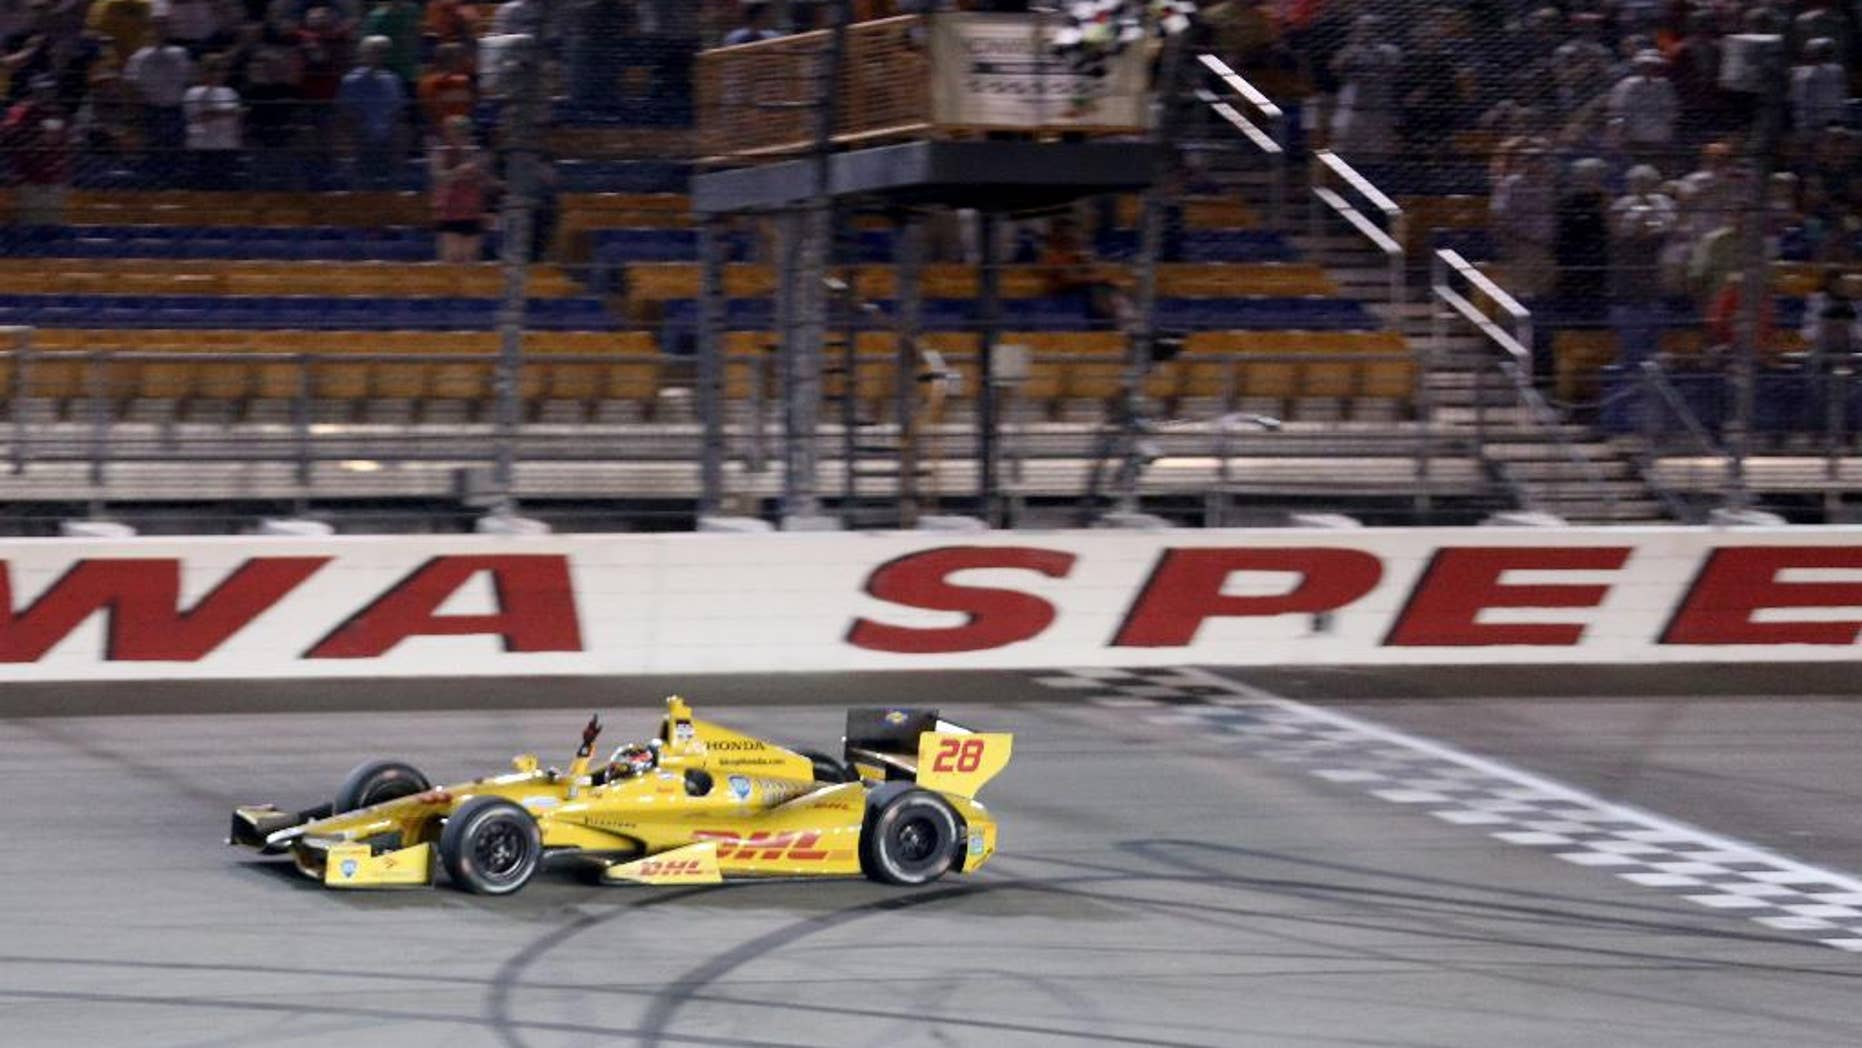 FILE - In this July 12, 2014, file photo, Ryan Hunter-Reay crosses the finish line to win the Indy Car series event in Newton, Iowa. Hunter-Reay is hoping that a return to the site of his last win will jumpstart a disappointing season.  (AP Photo/Justin Hayworth, File)